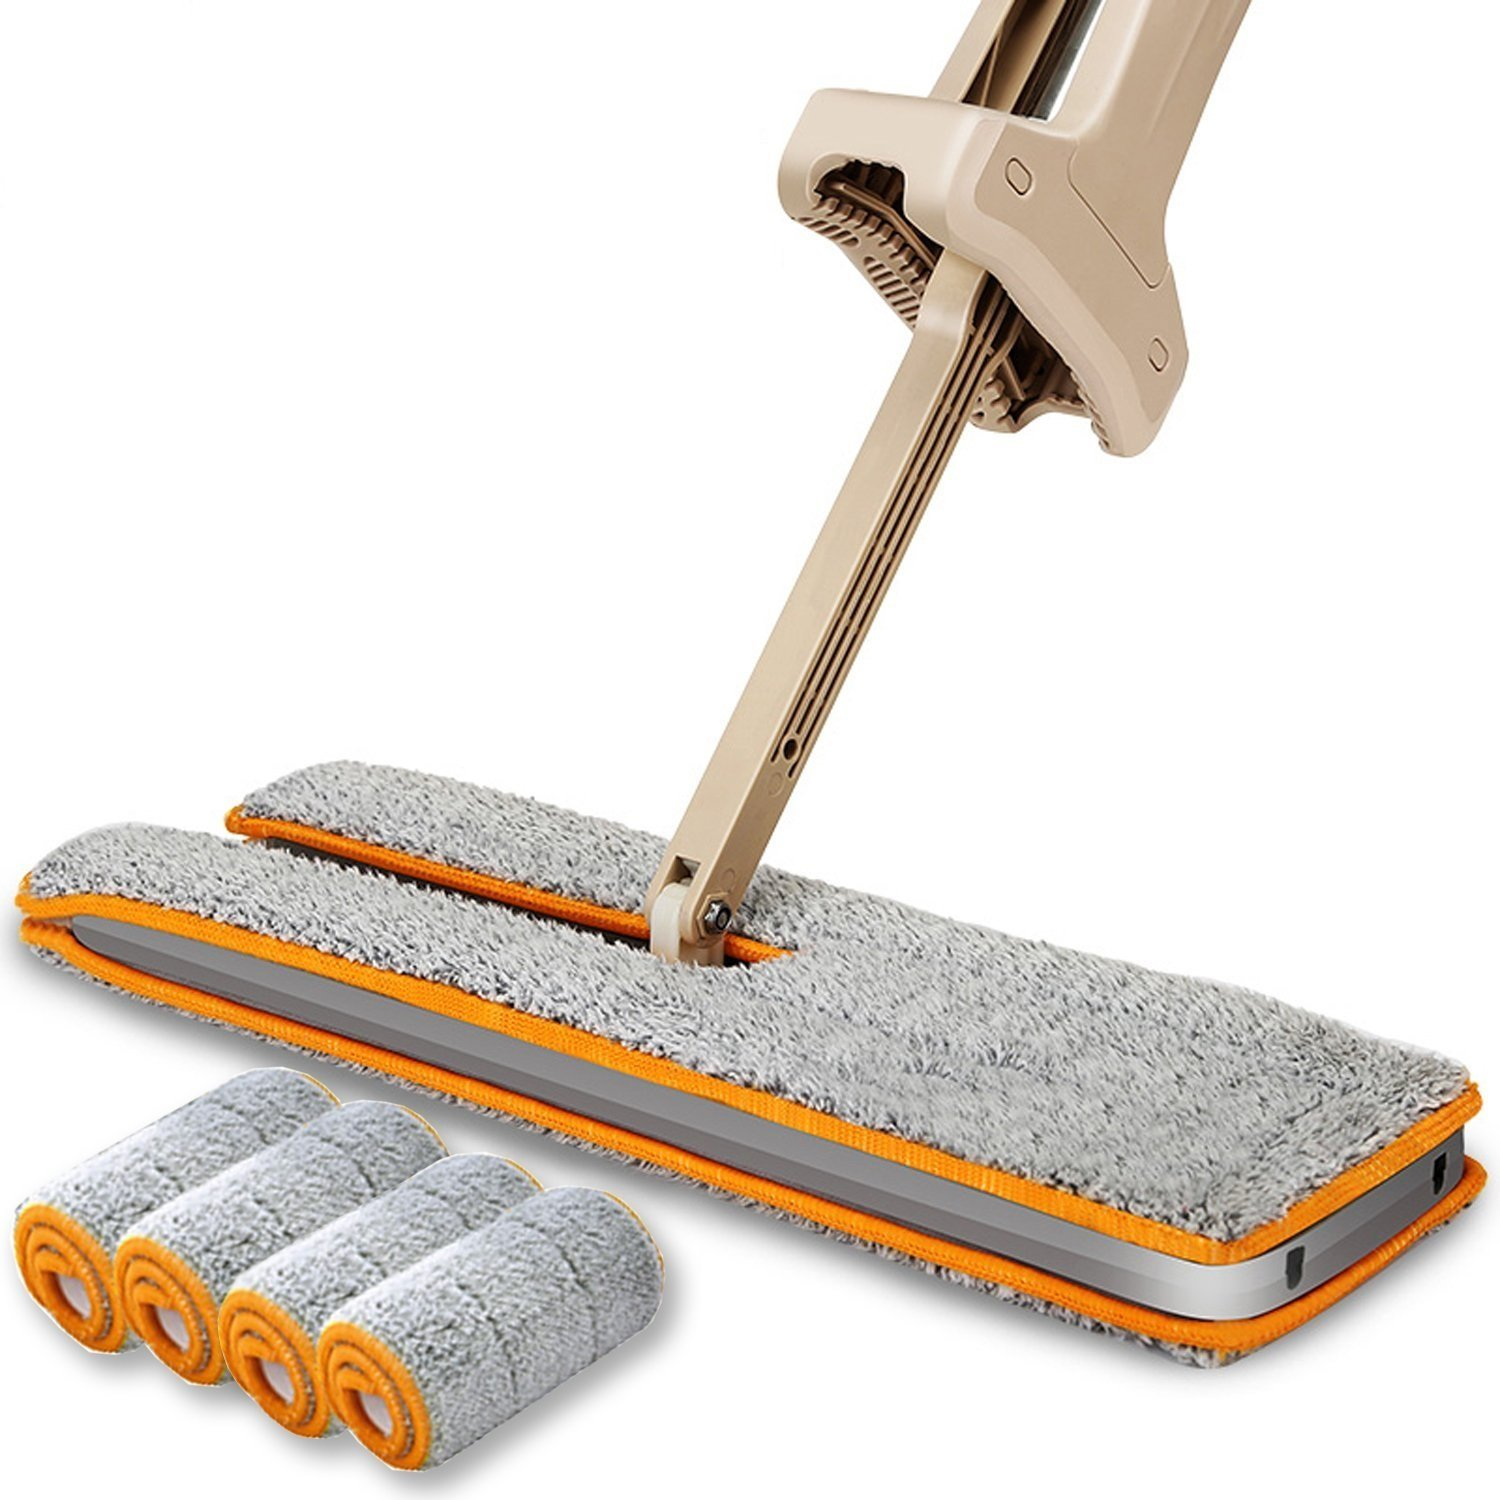 Microfiber Mop,hands-free wash flat mop, Wet and dry mop,360°rotation without dead ends Clean For indoor floors, glass, windows etc.